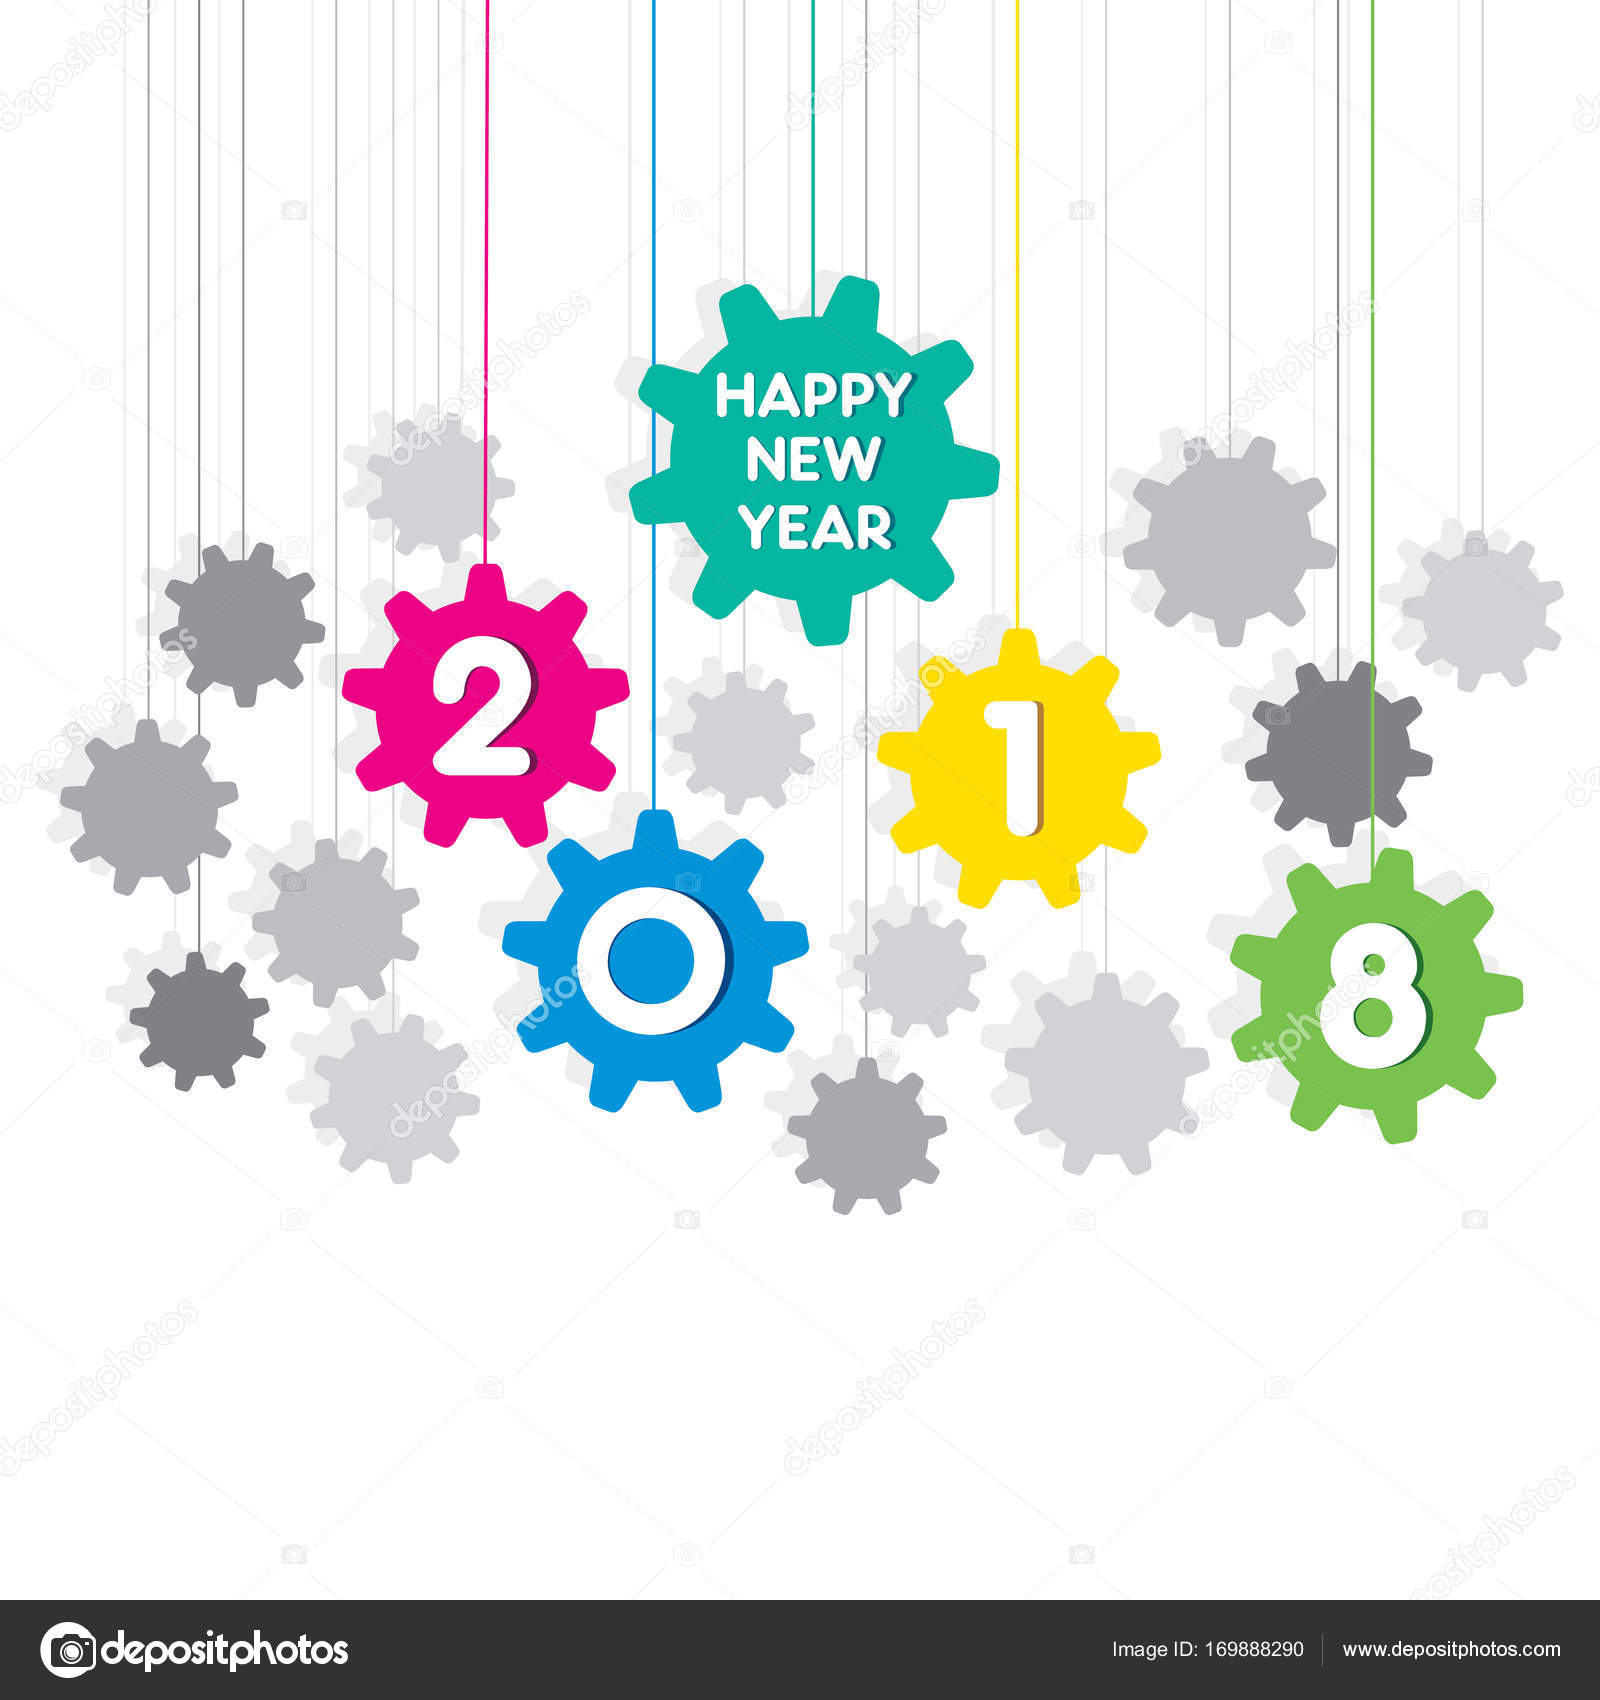 creative new year 2018 greeting design using hanging gear shape pattern vector by vectotaart